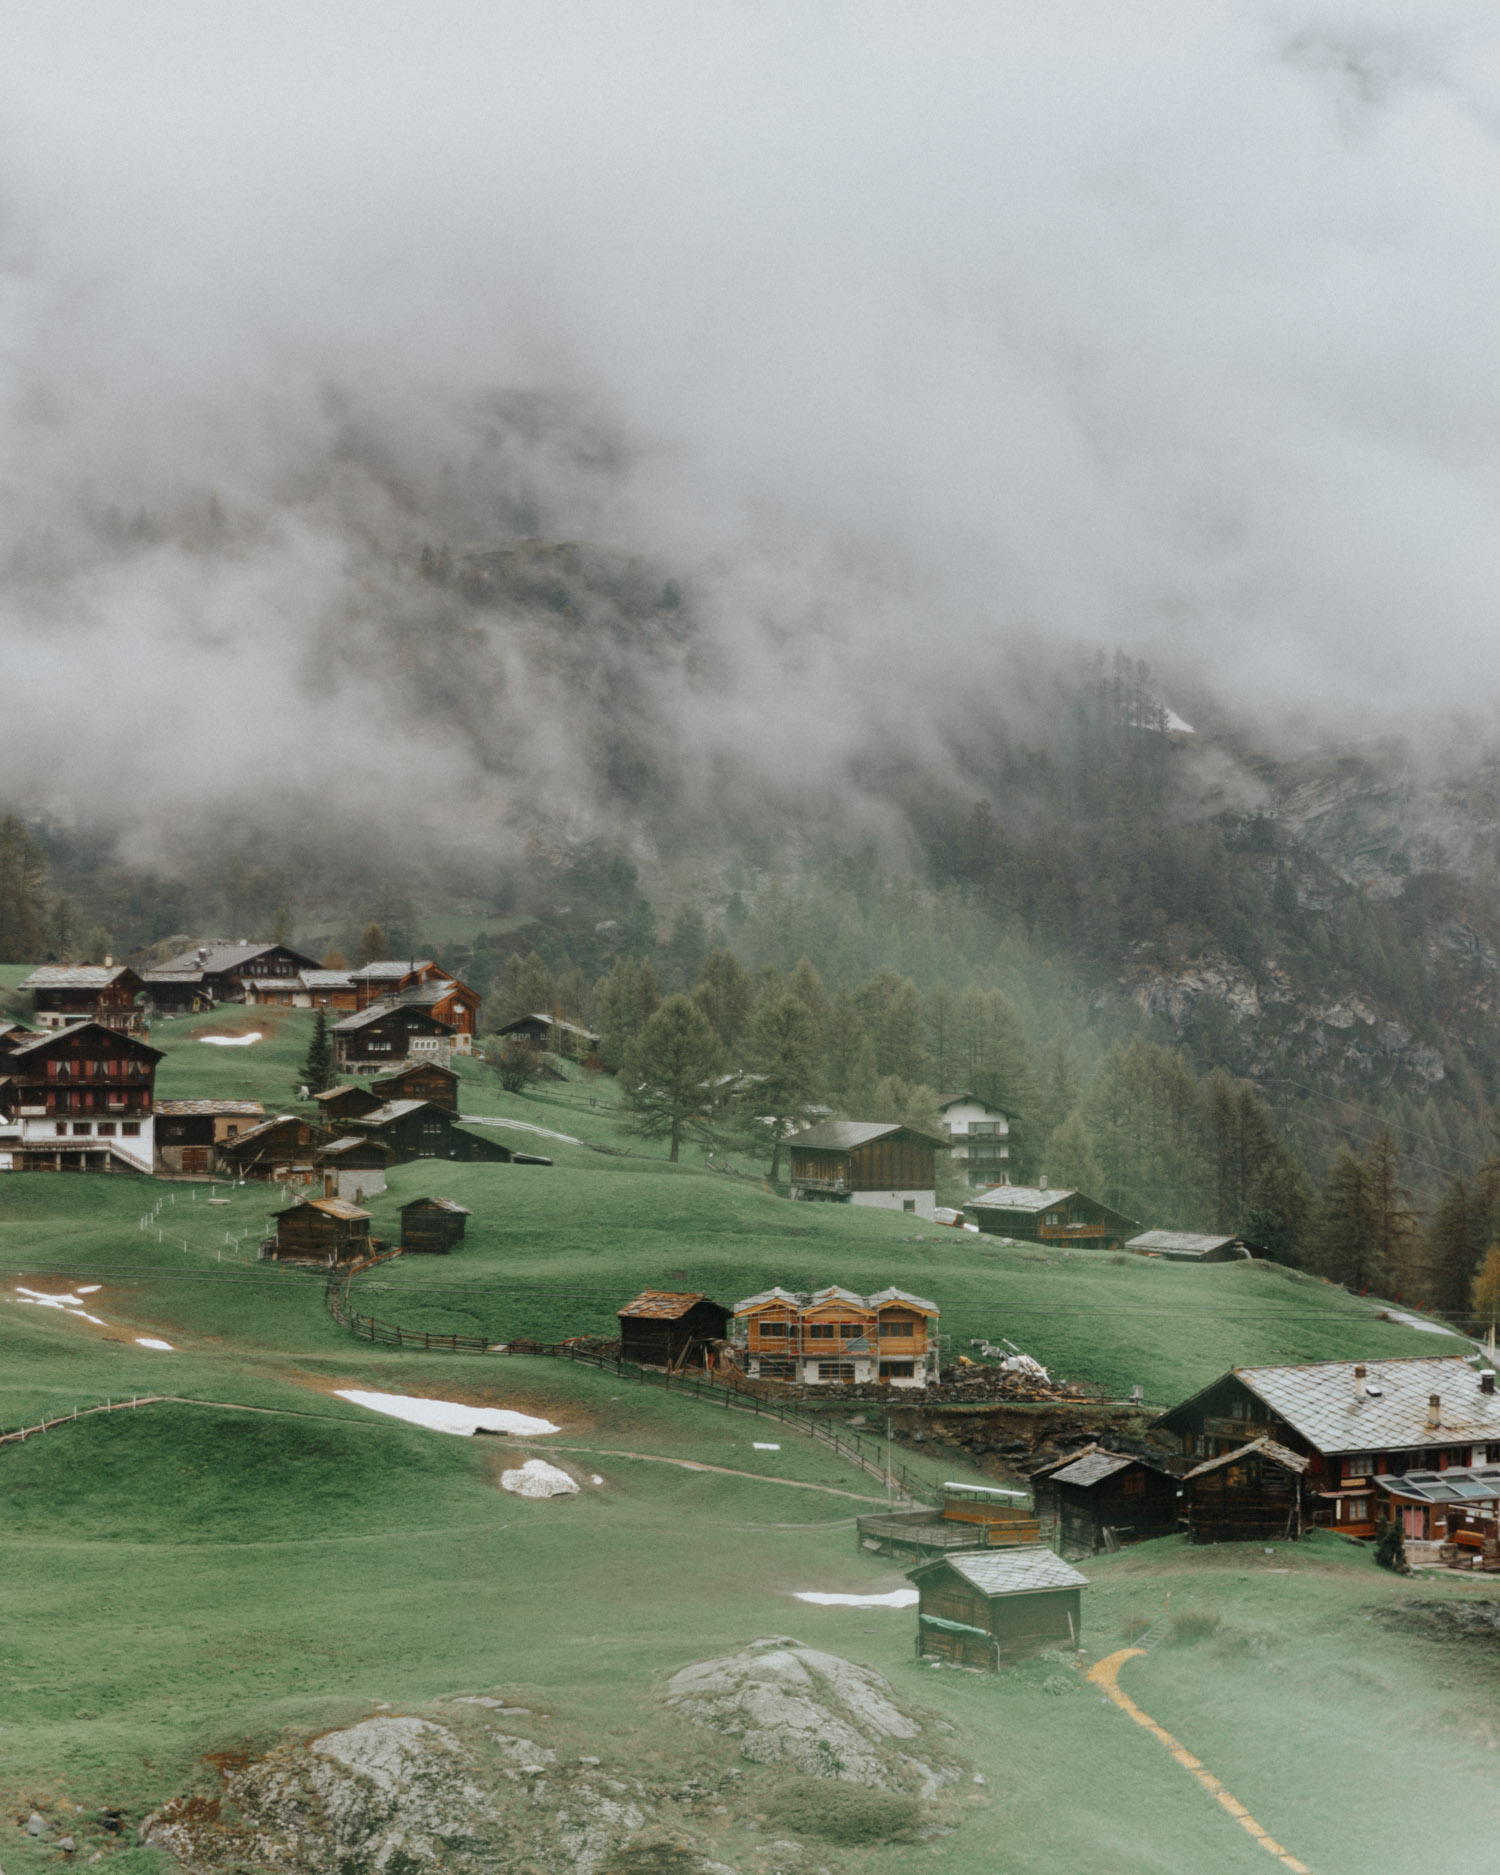 Zermatt Village in the clouds